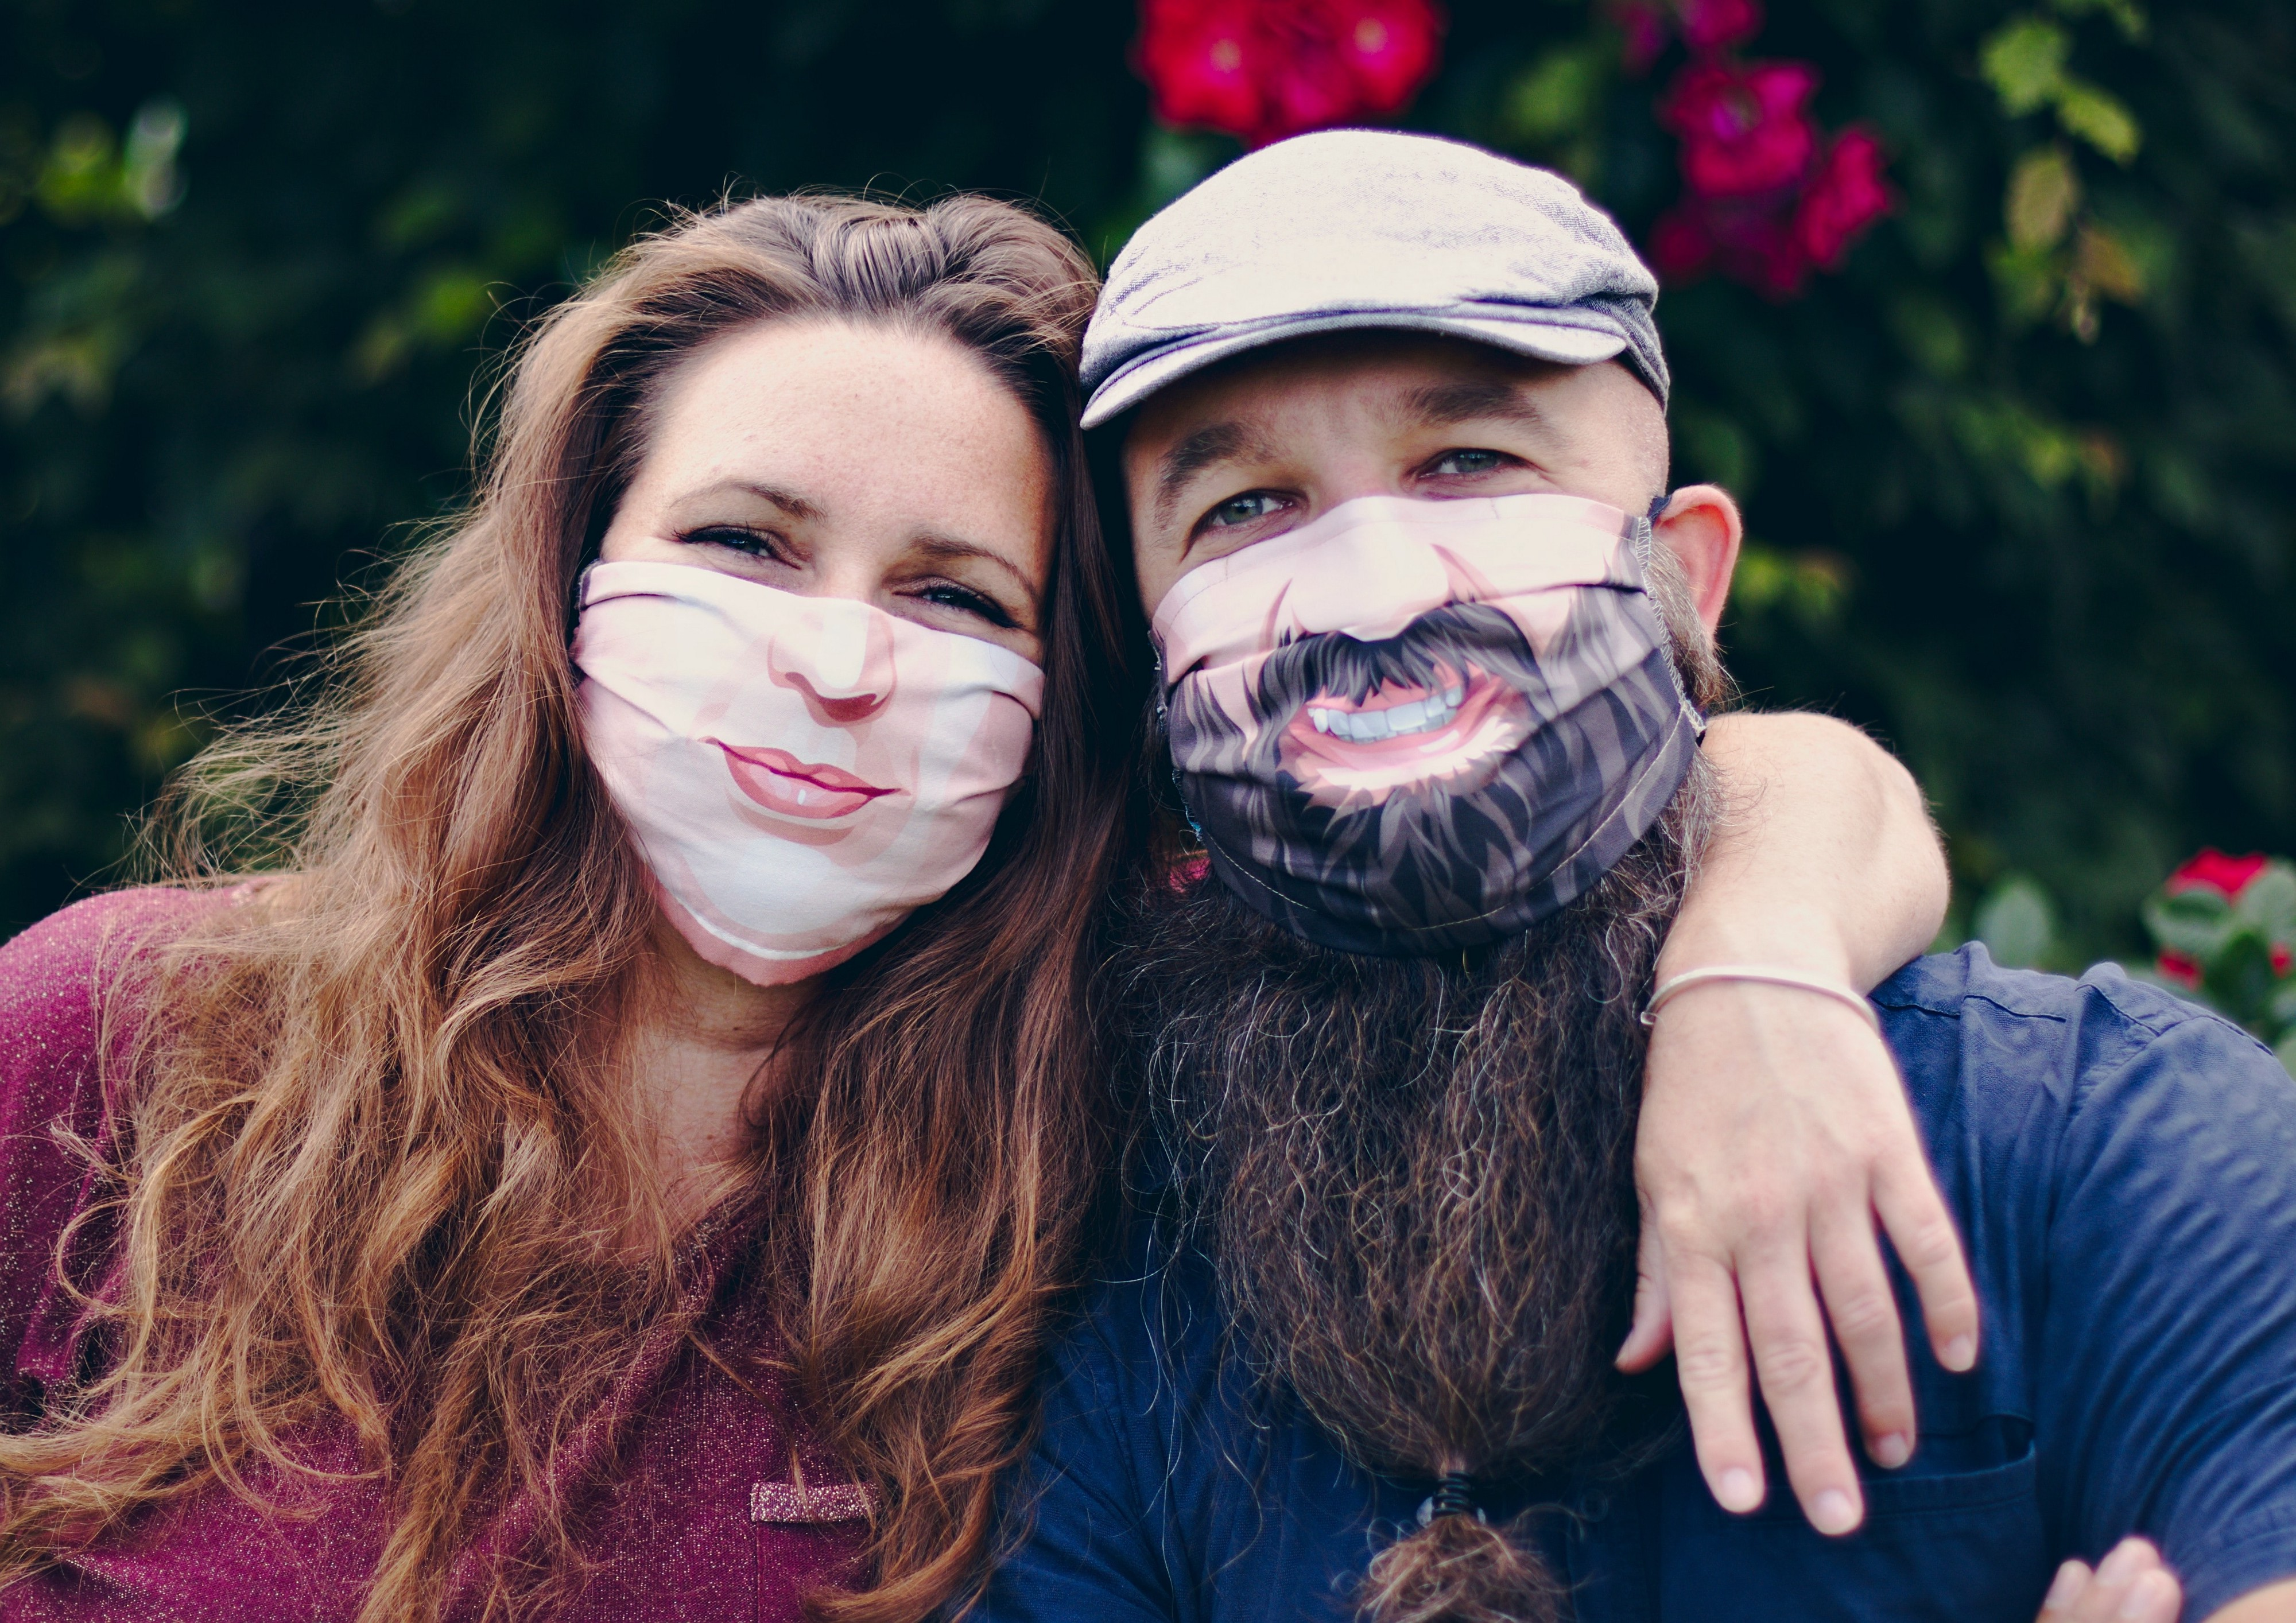 Couple poses in cloth face masks that have smiles printed on them.